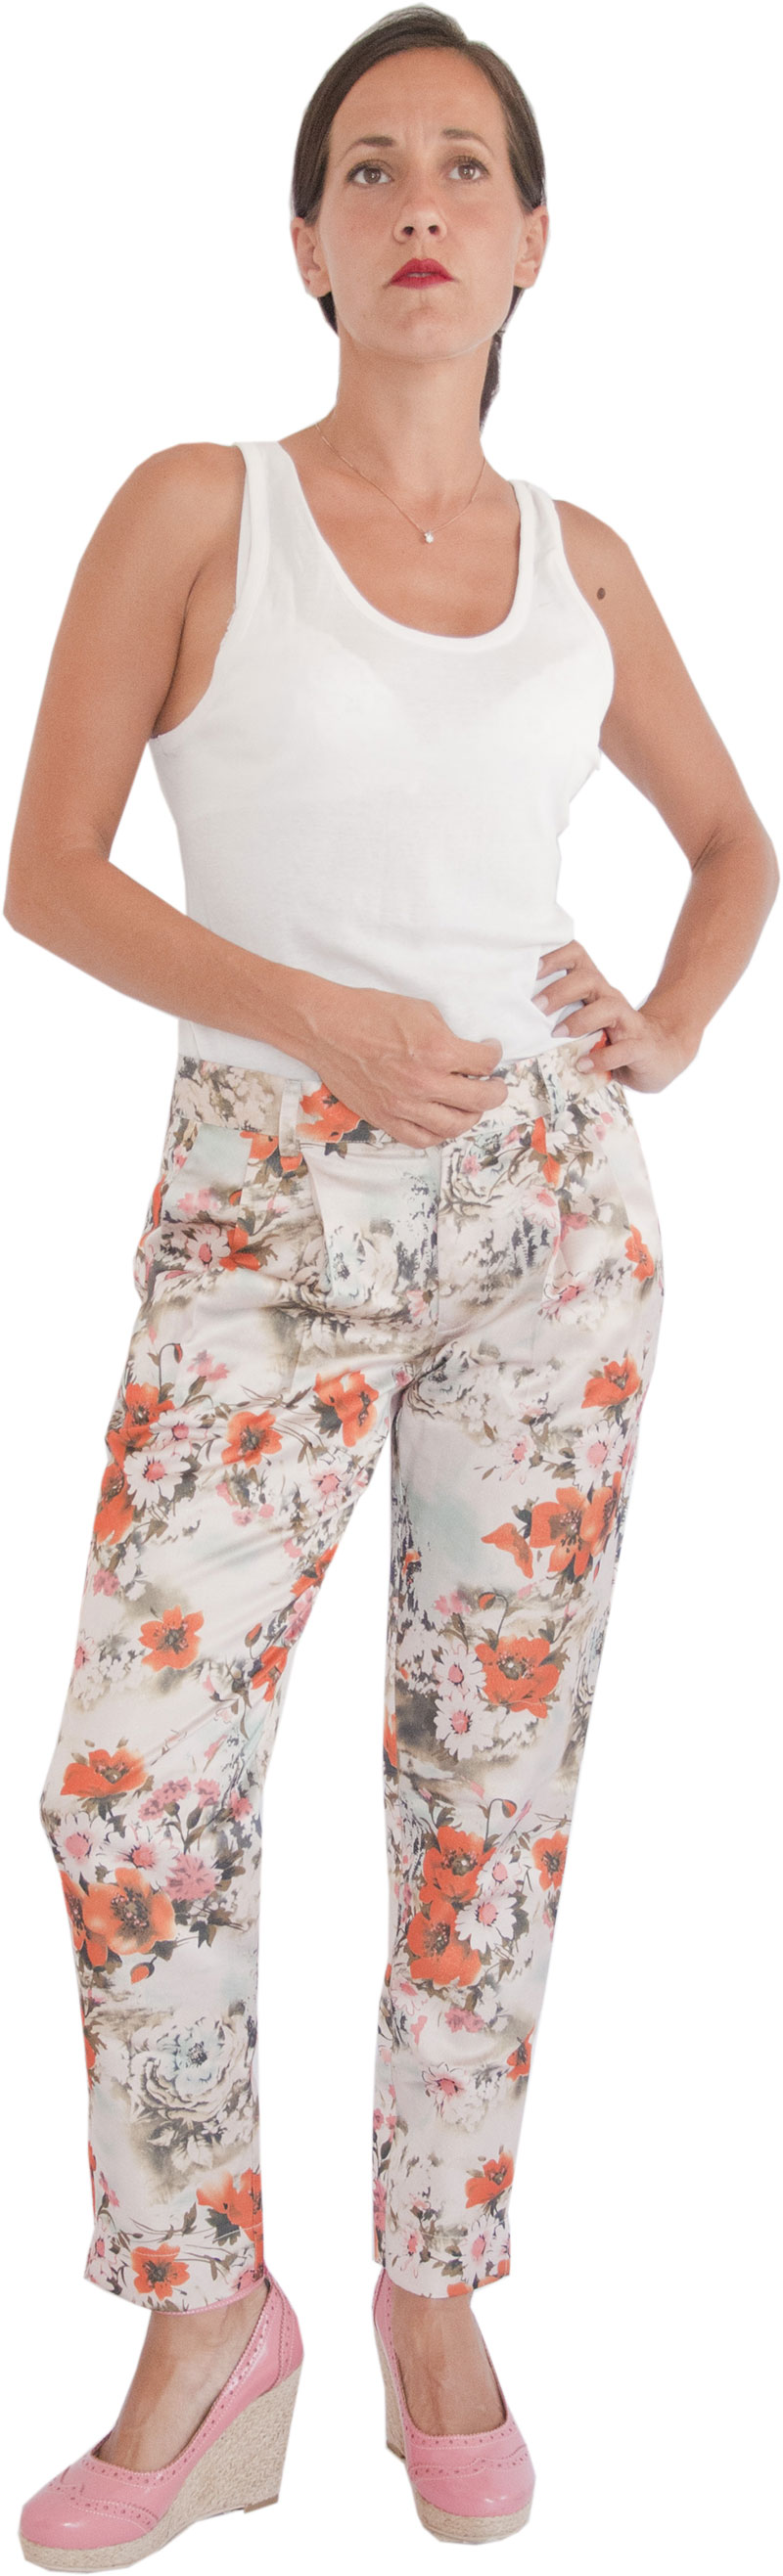 Pantalon Rita Coquelicot Collection Jolie Madame